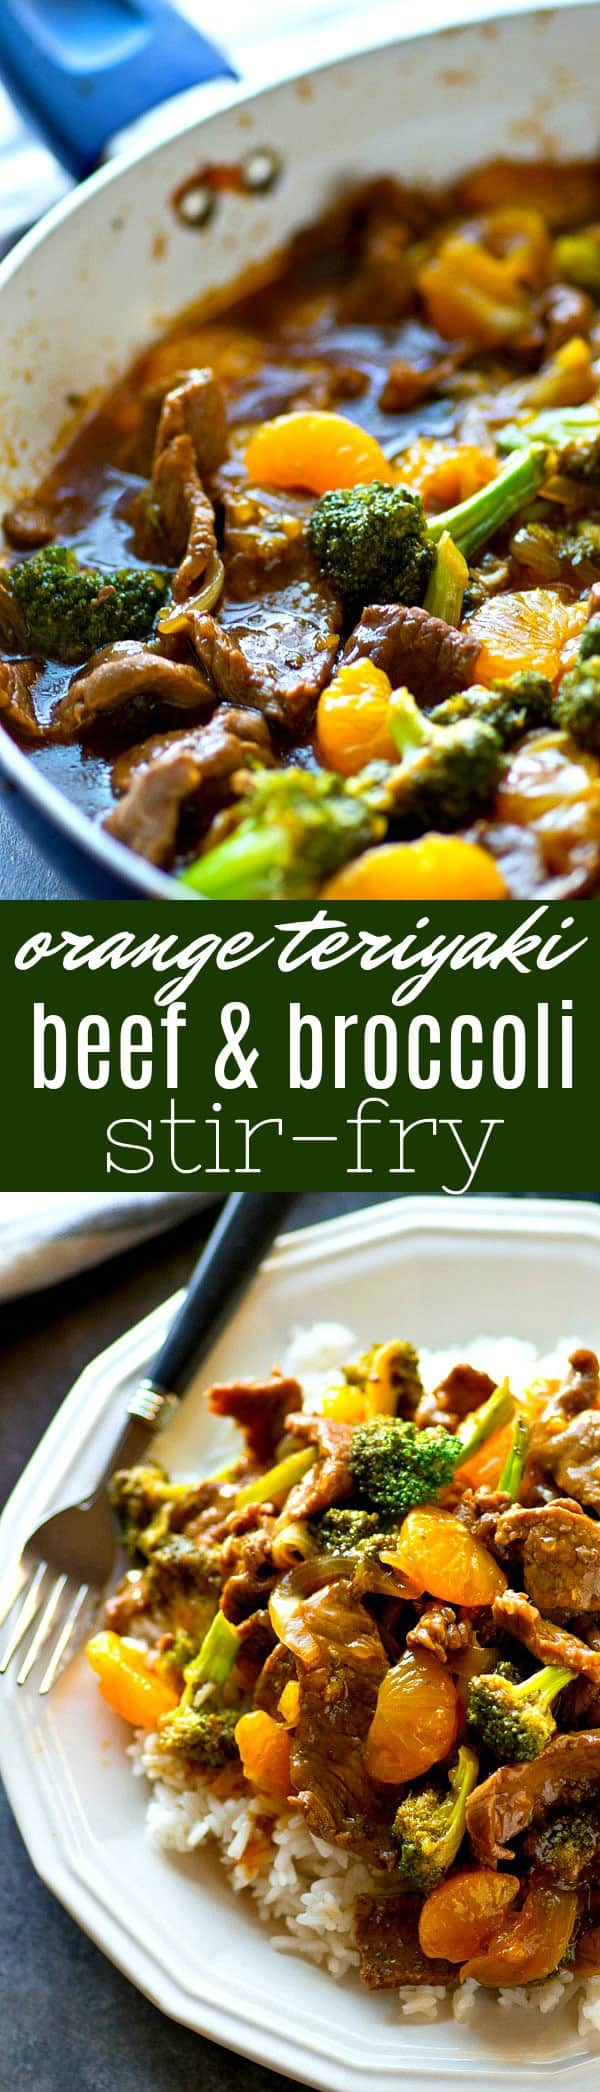 A homemade orange teriyaki sauce transforms this easy beef and broccoli stir-fry into an unbelievably flavorful one-pot dinner that the whole family will love!